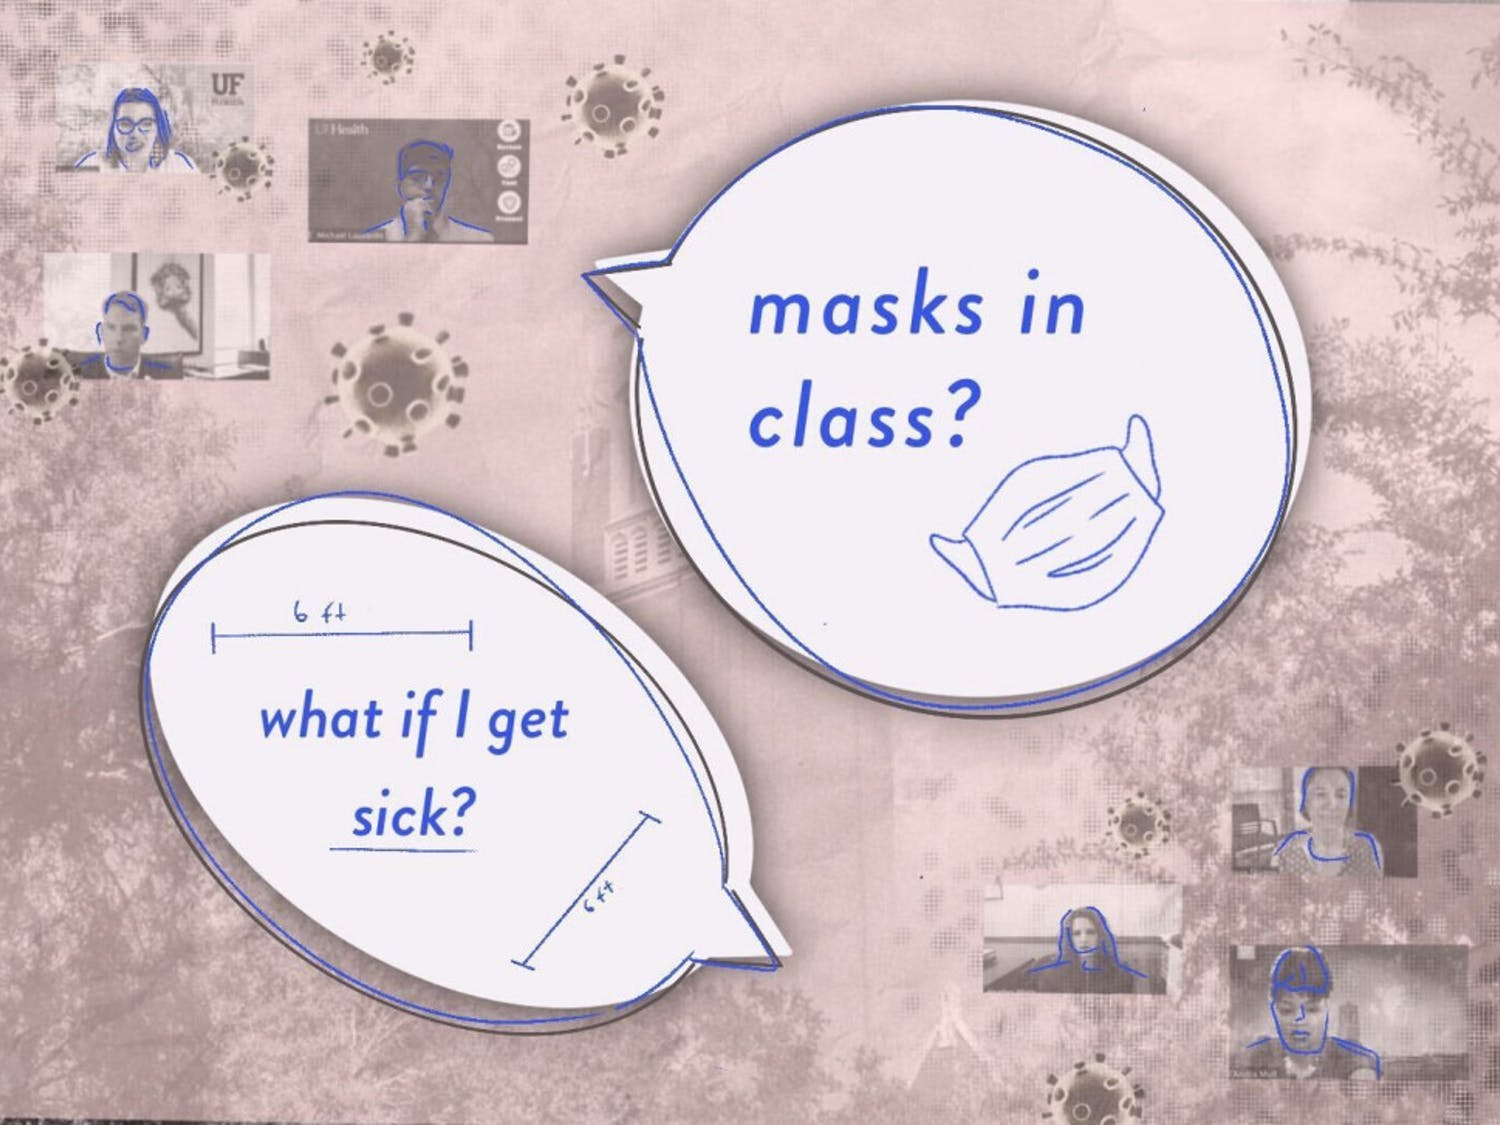 UF and UF Health officials discussed enforcing masks and protocols for when students get sick at a town hall on Thursday.